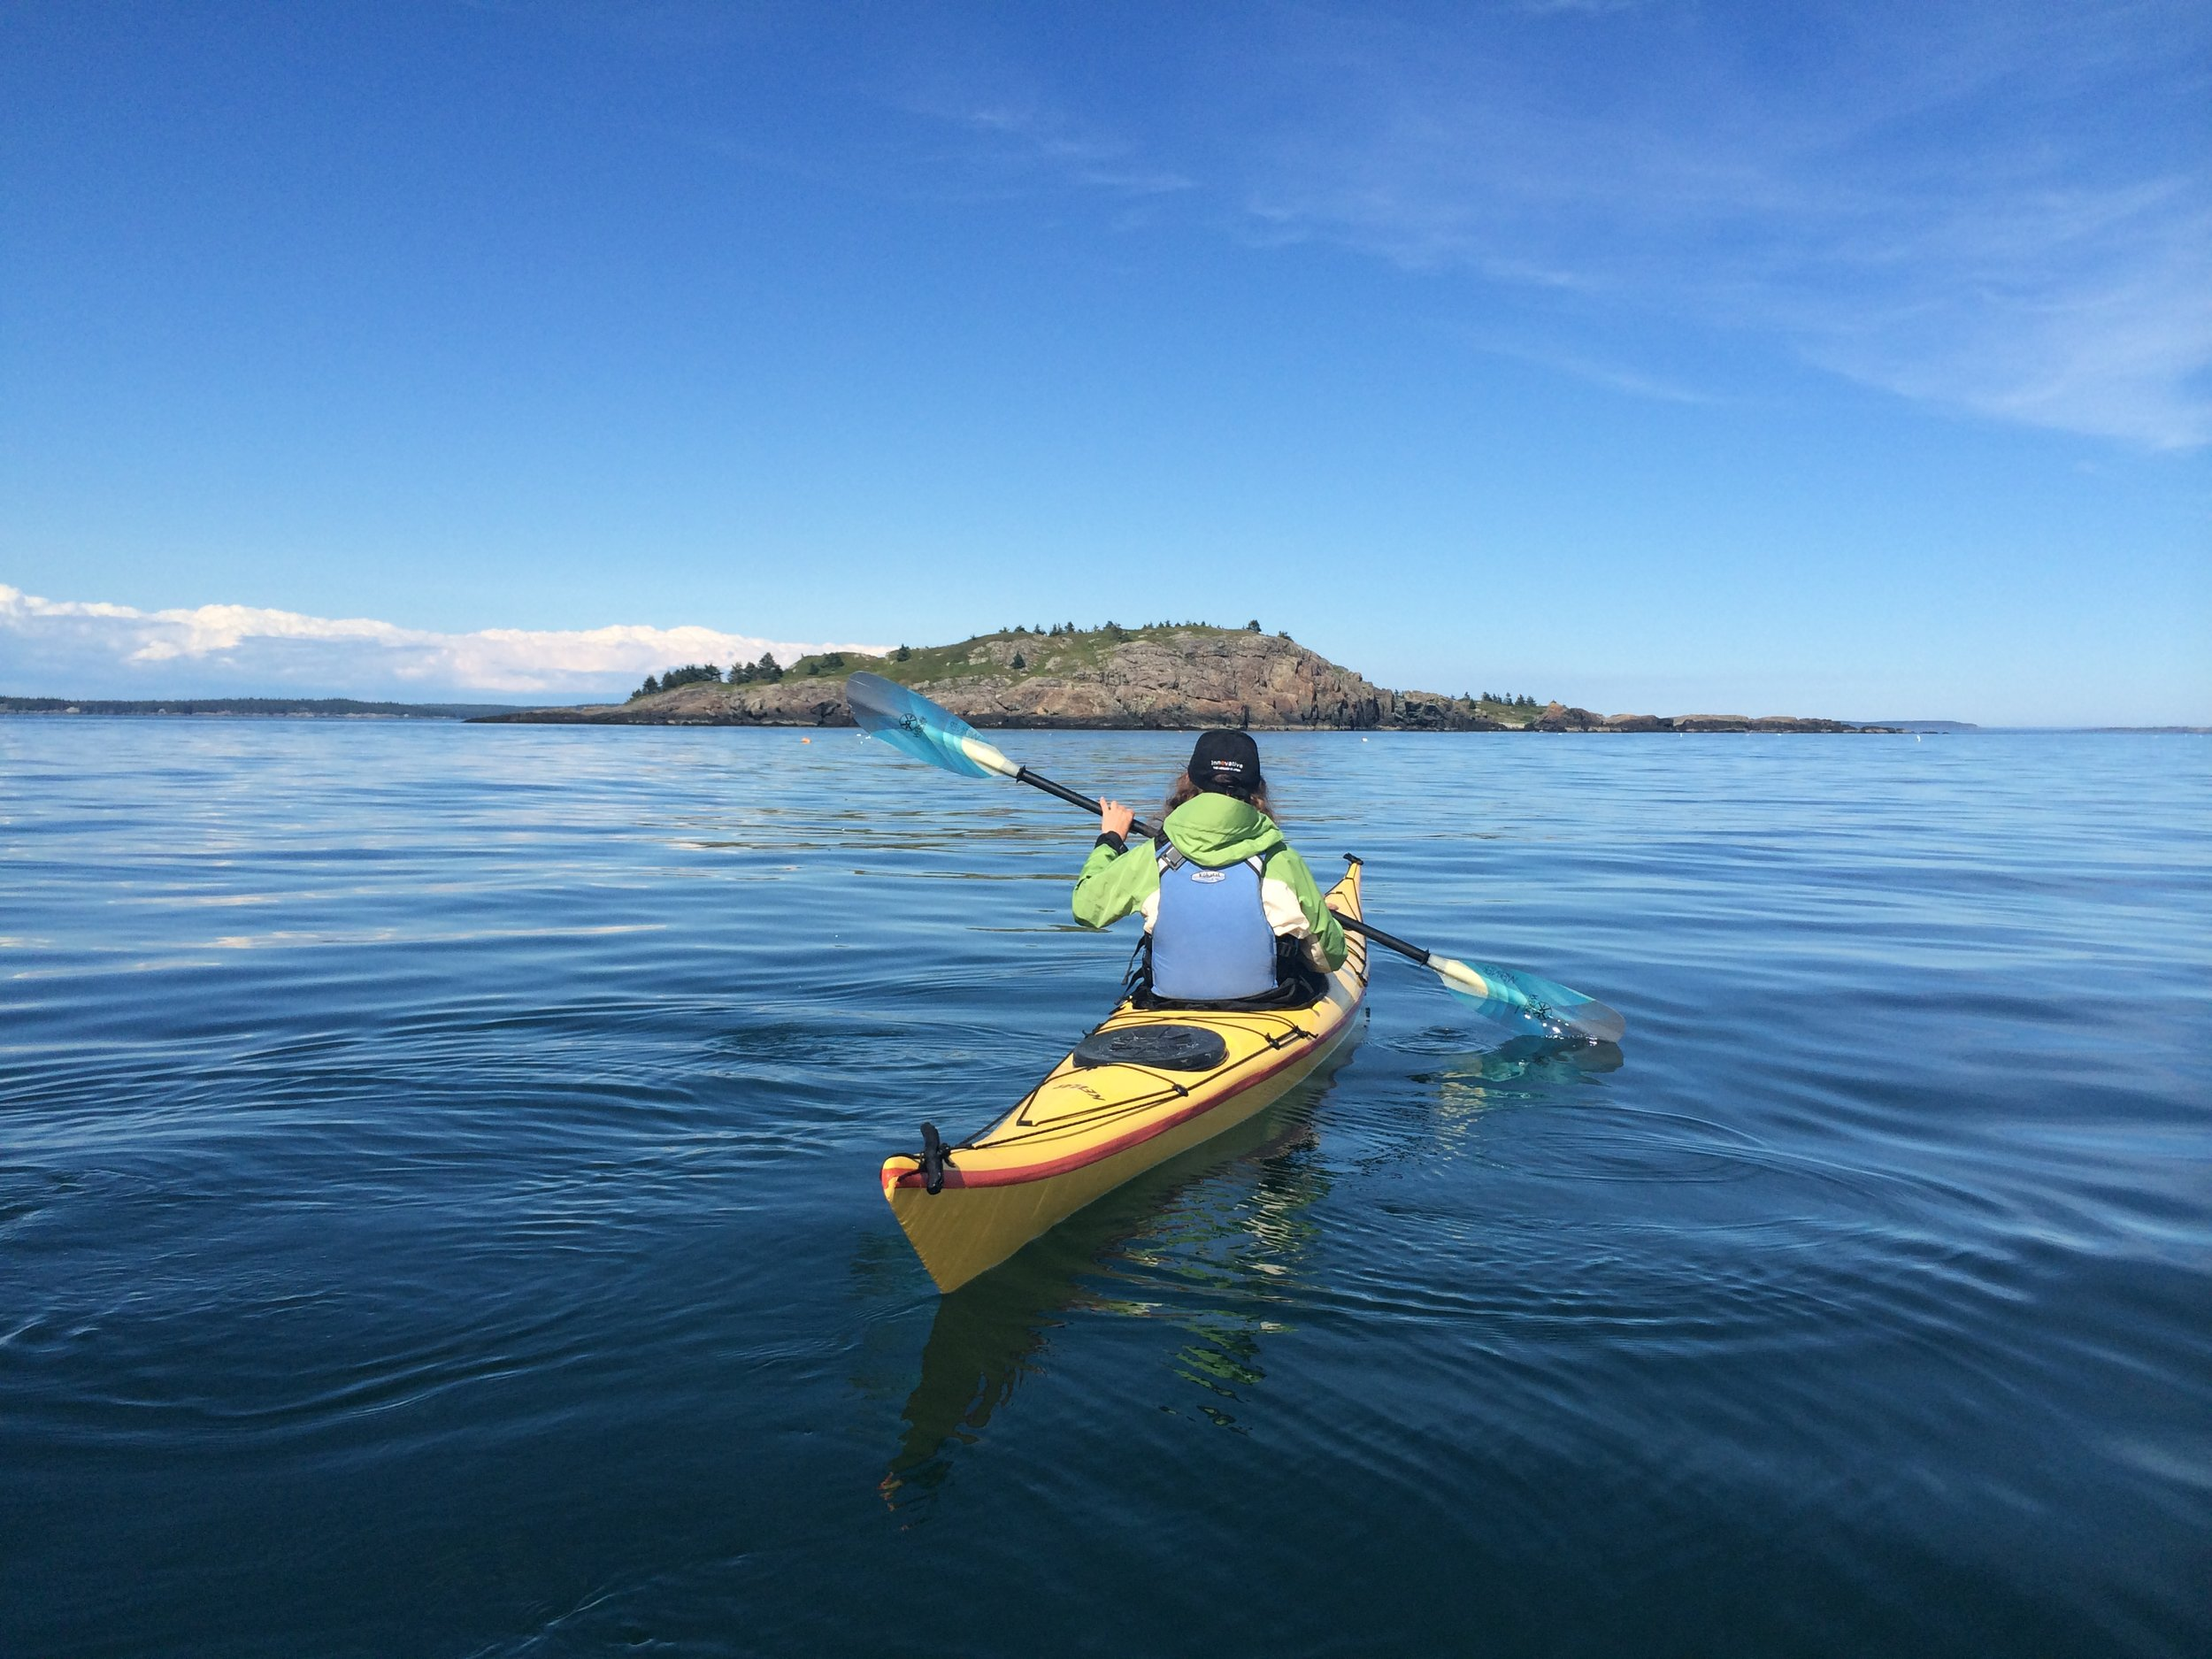 Sea Kayak Navigation - 2019: June 22, 9:30 am to 2:30 pm$80 per person